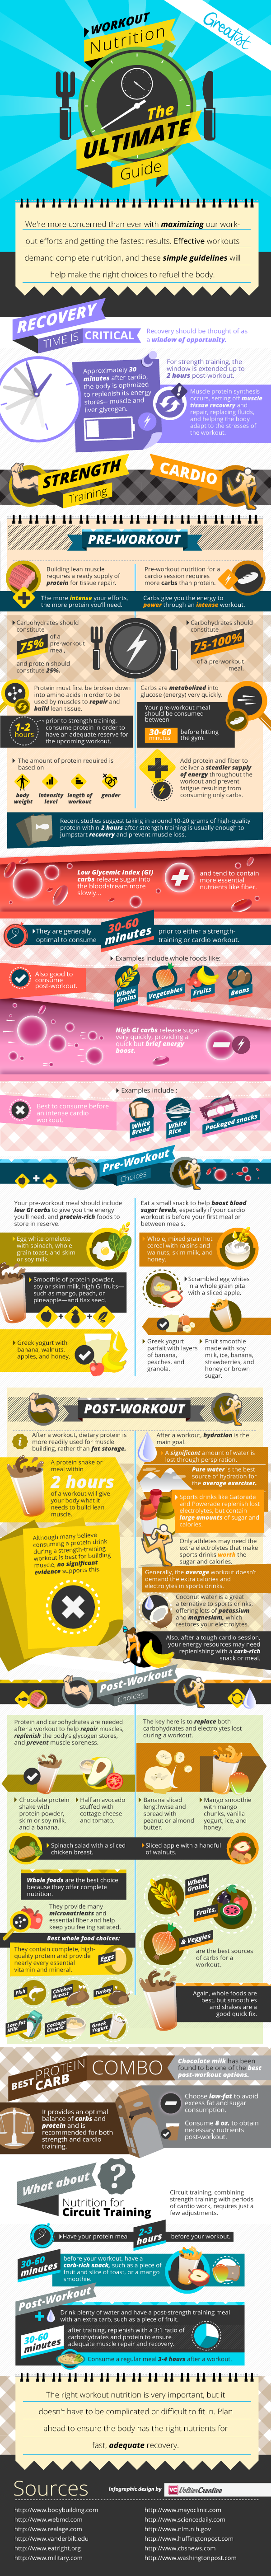 Workout Nutrition Guide {Infographic} - Best Infographics